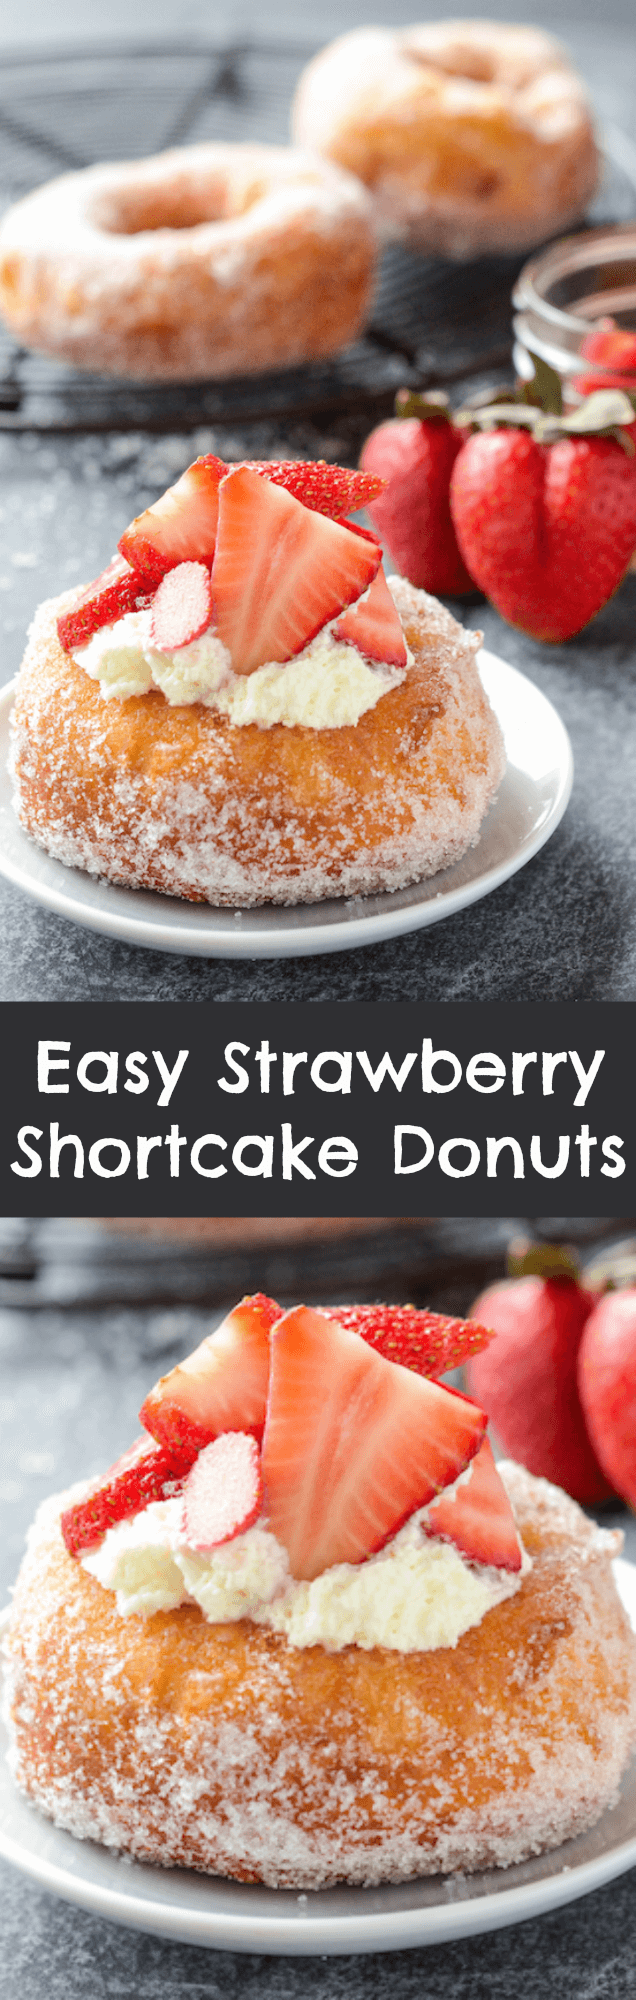 Strawberry Shortcake Donuts that only take 15 minutes to make! #Breakfast #Brunch